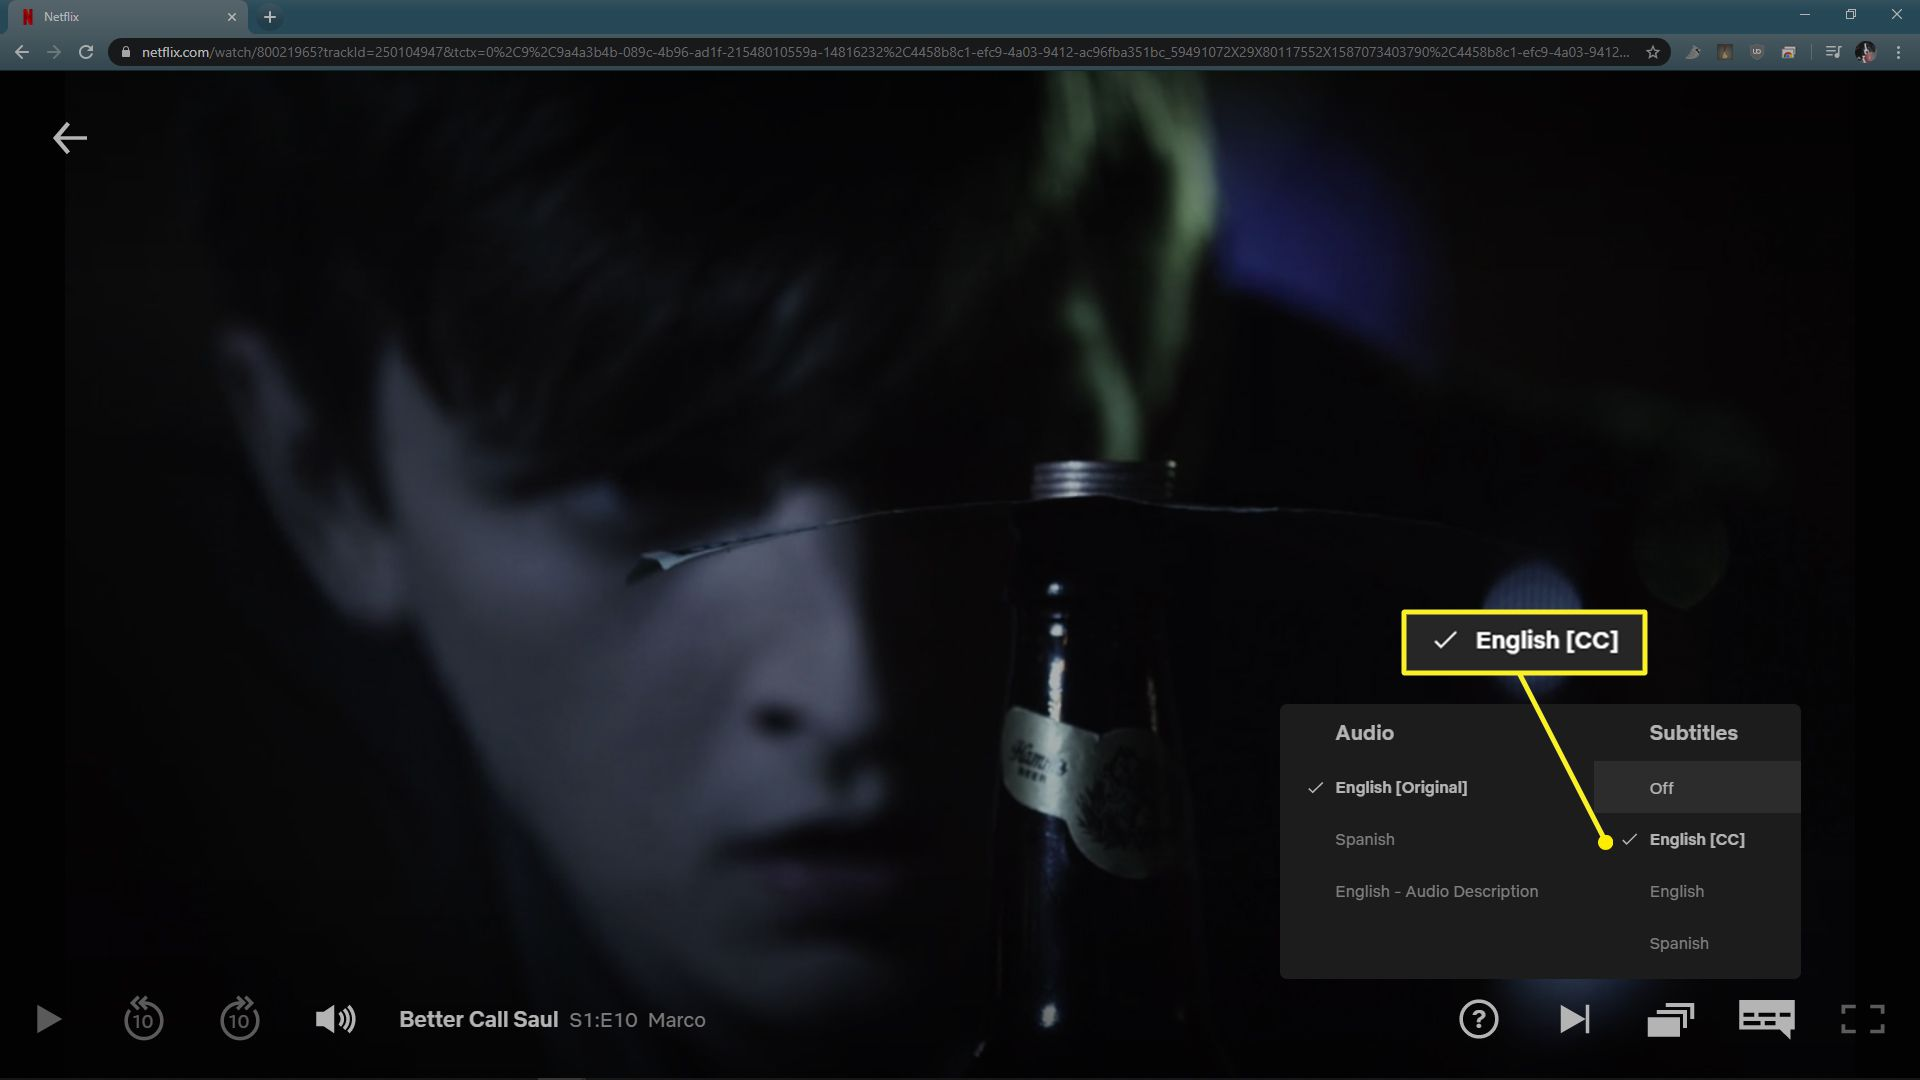 Netflix Audio and Subtitles menu with English (CC) highlighted